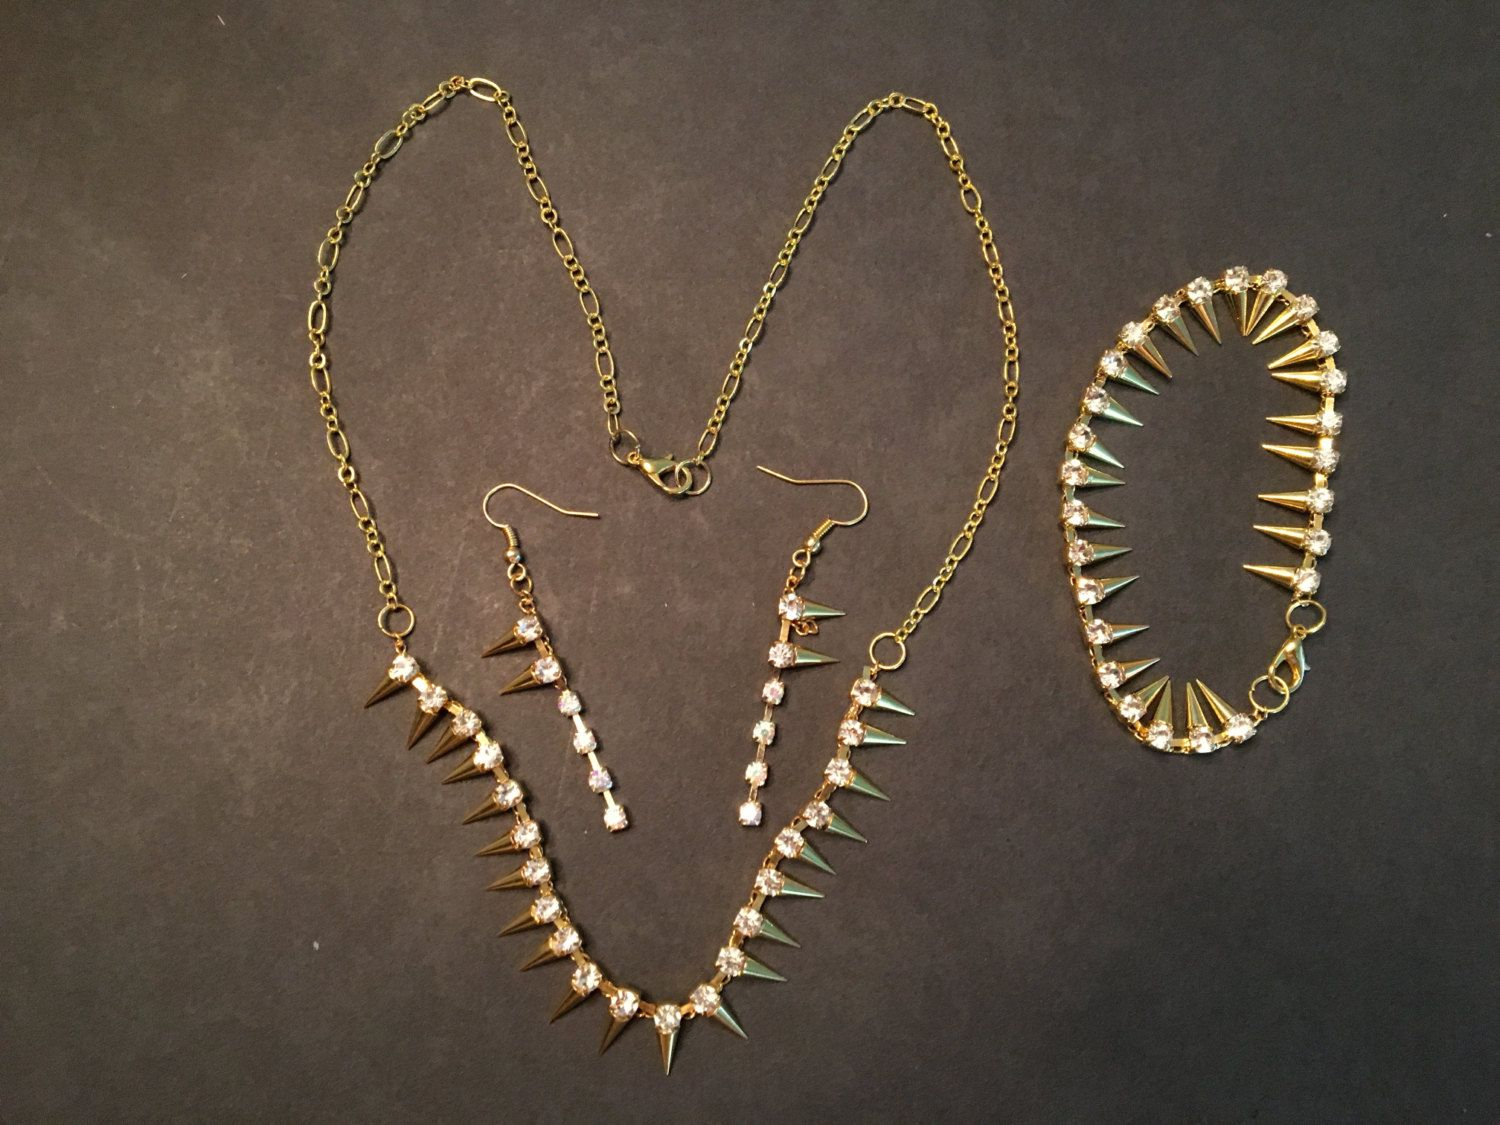 Hot funky spike gold necklace bracelet and earring set by